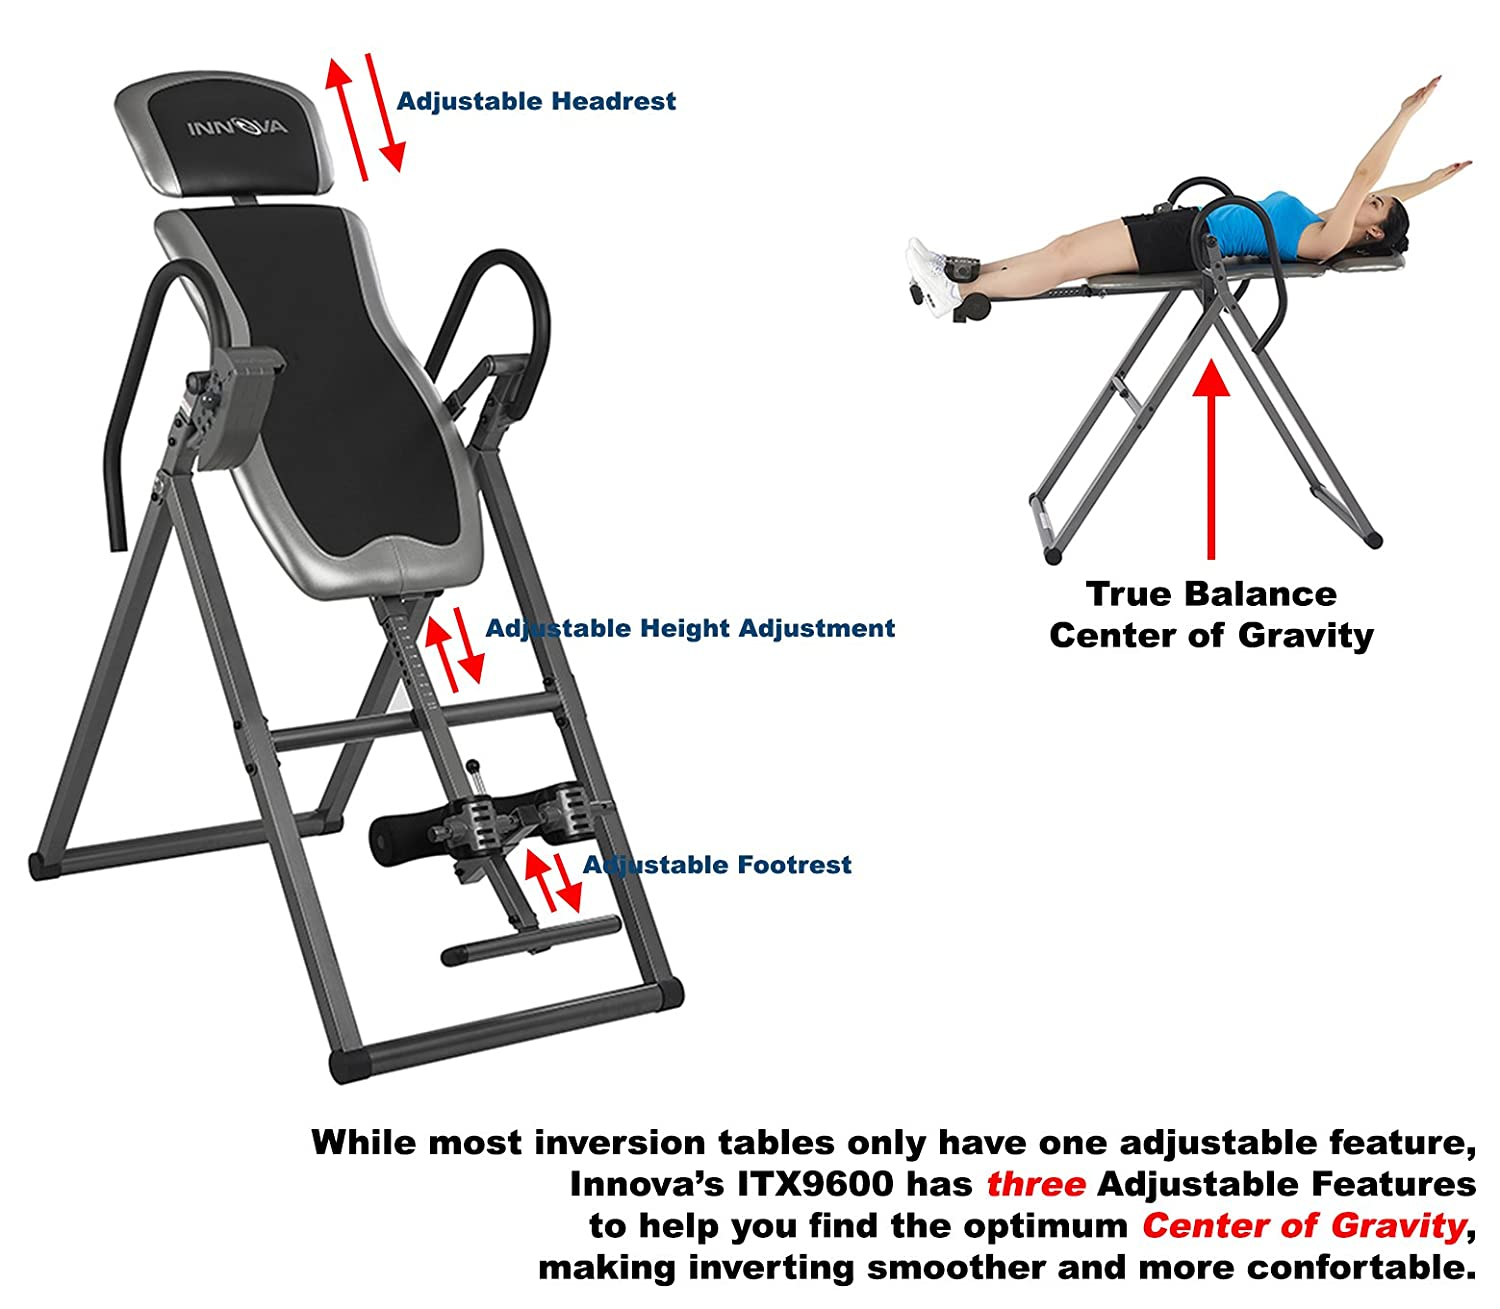 0be72d08f7 Amazon.com   Innova ITX9600 Heavy Duty Inversion Table with Adjustable  Headrest   Protective Cover   Inversion Equipment   Sports   Outdoors